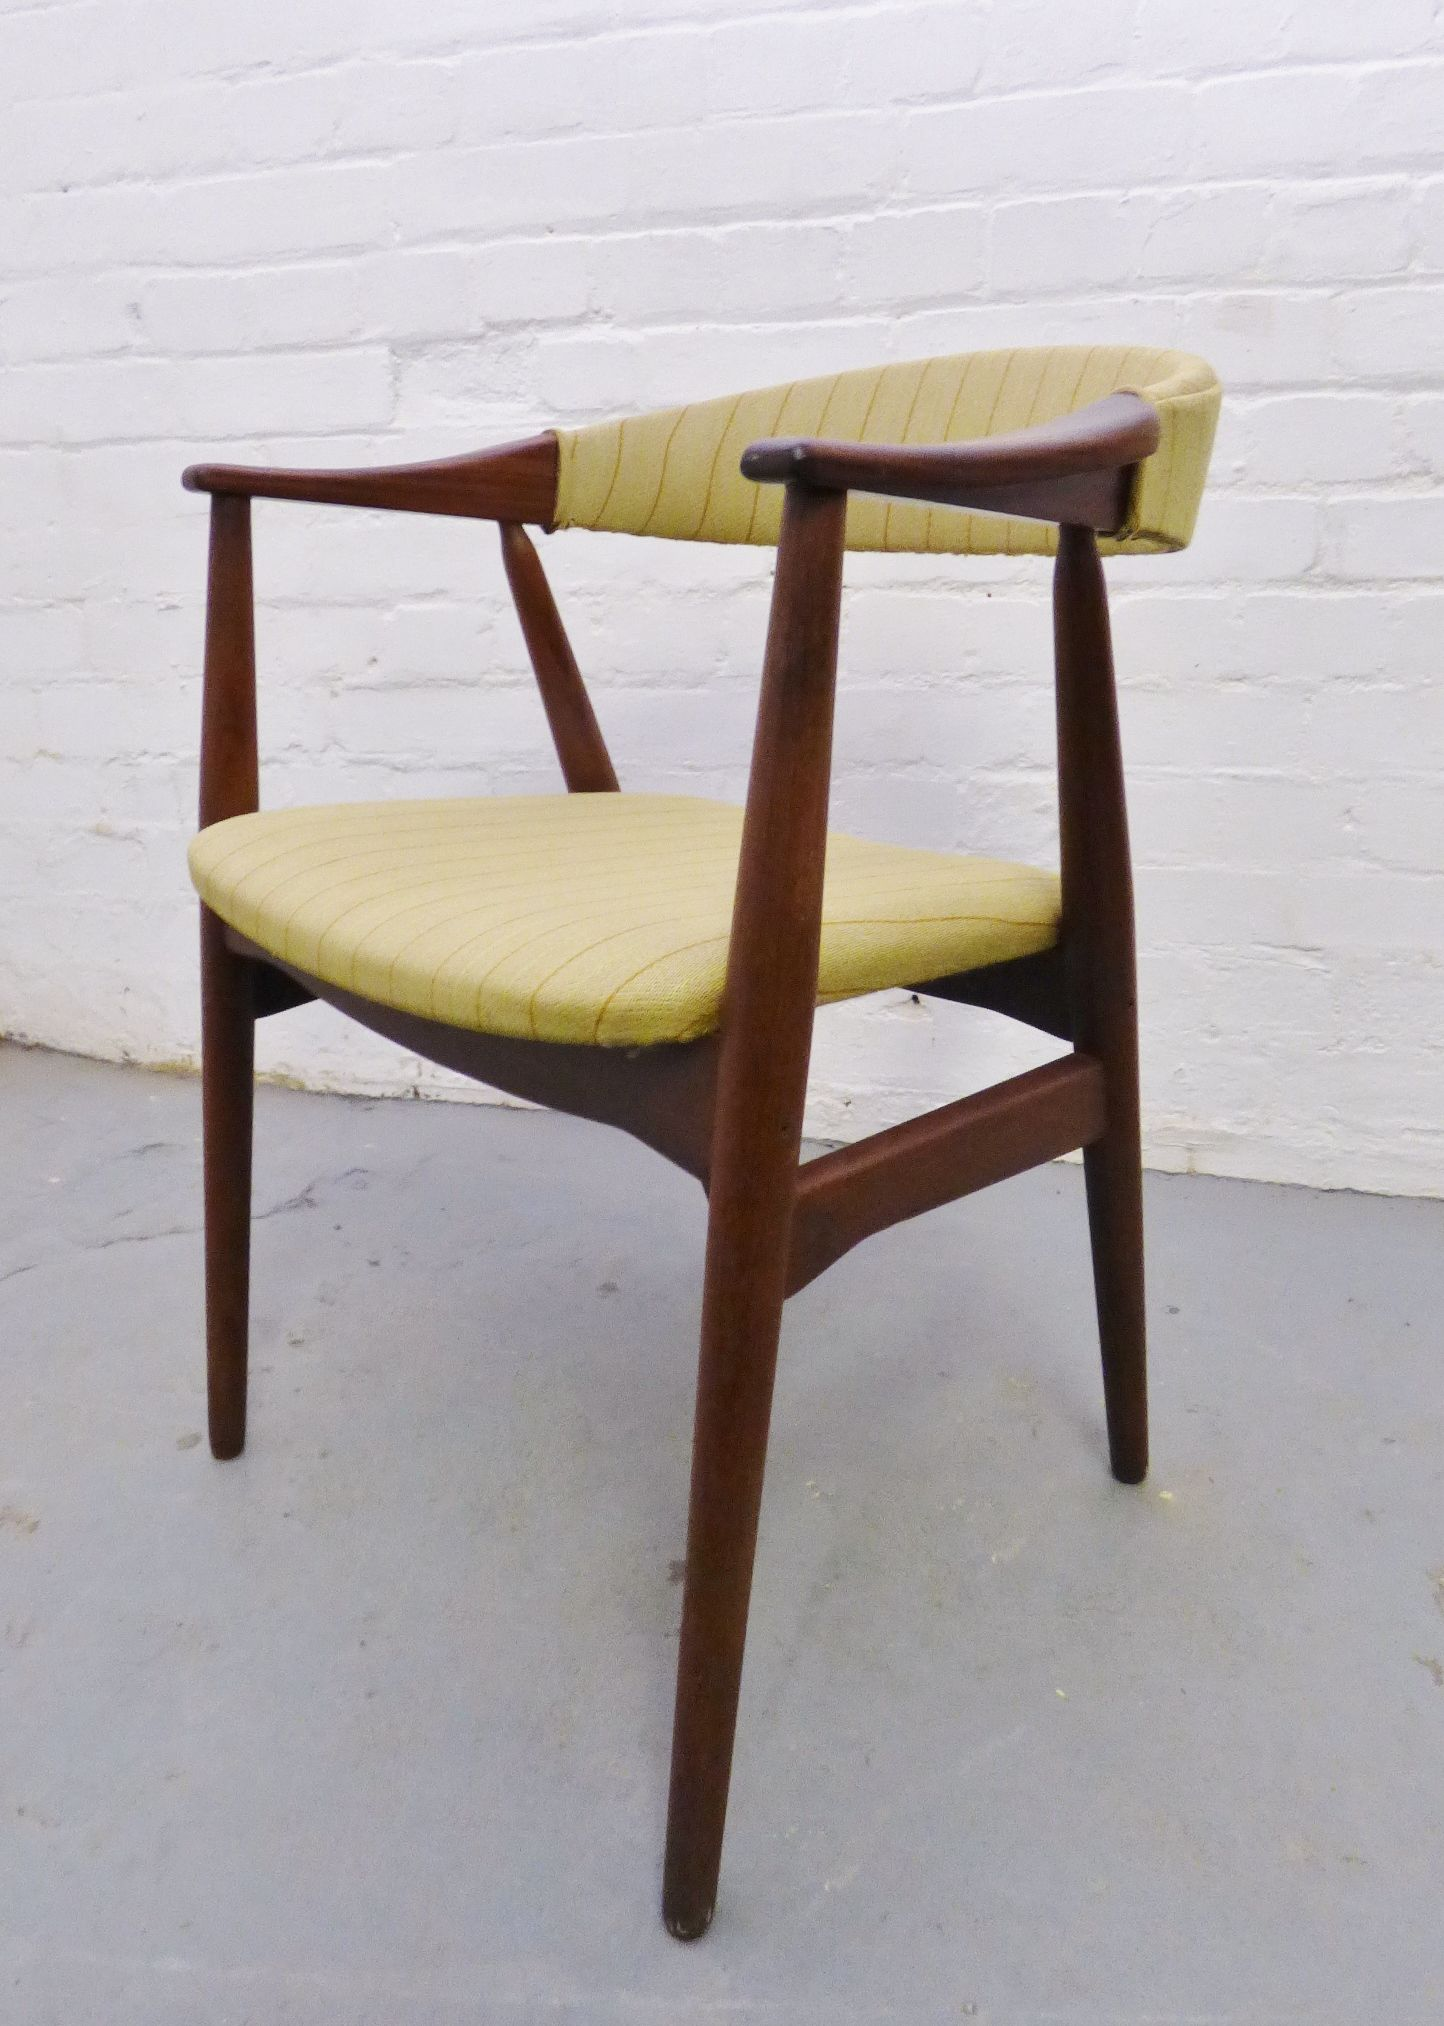 Mid century Danish teak desk chair by Farstrup www archivefurniture co ukMid century Danish teak desk chair by Farstrup www  . Moller Chair Ebay Uk. Home Design Ideas